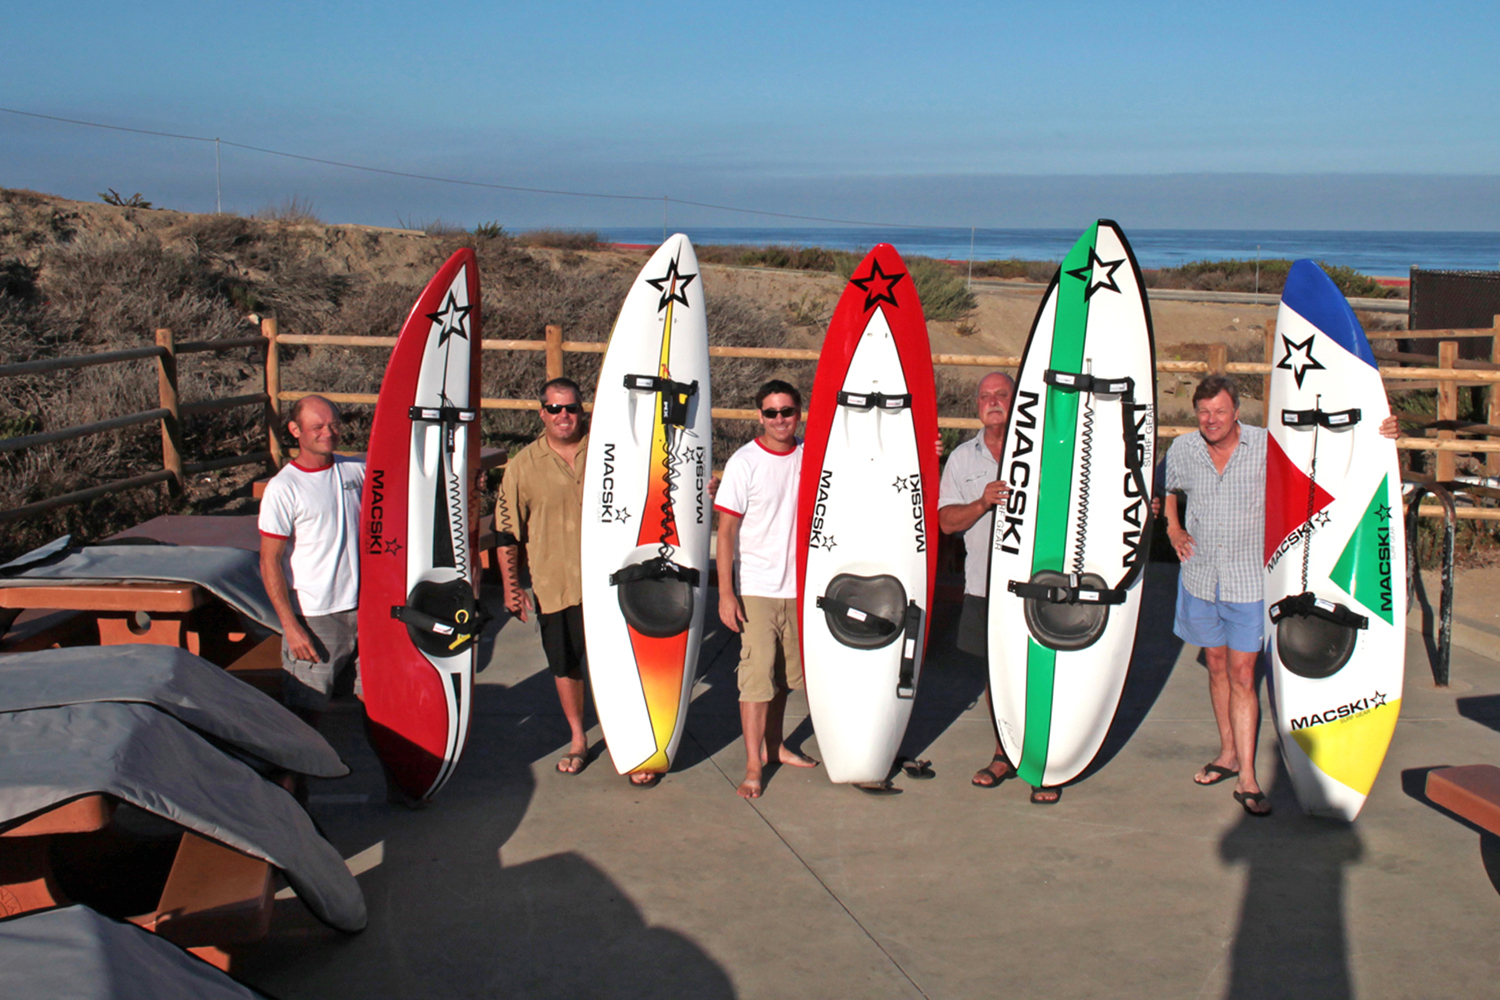 Sunday August 17, 2014.With from the left: Dom, Kevin, Alex, Dick, and Barry with their new Macski at Torrey Pines (click on pic to access video)